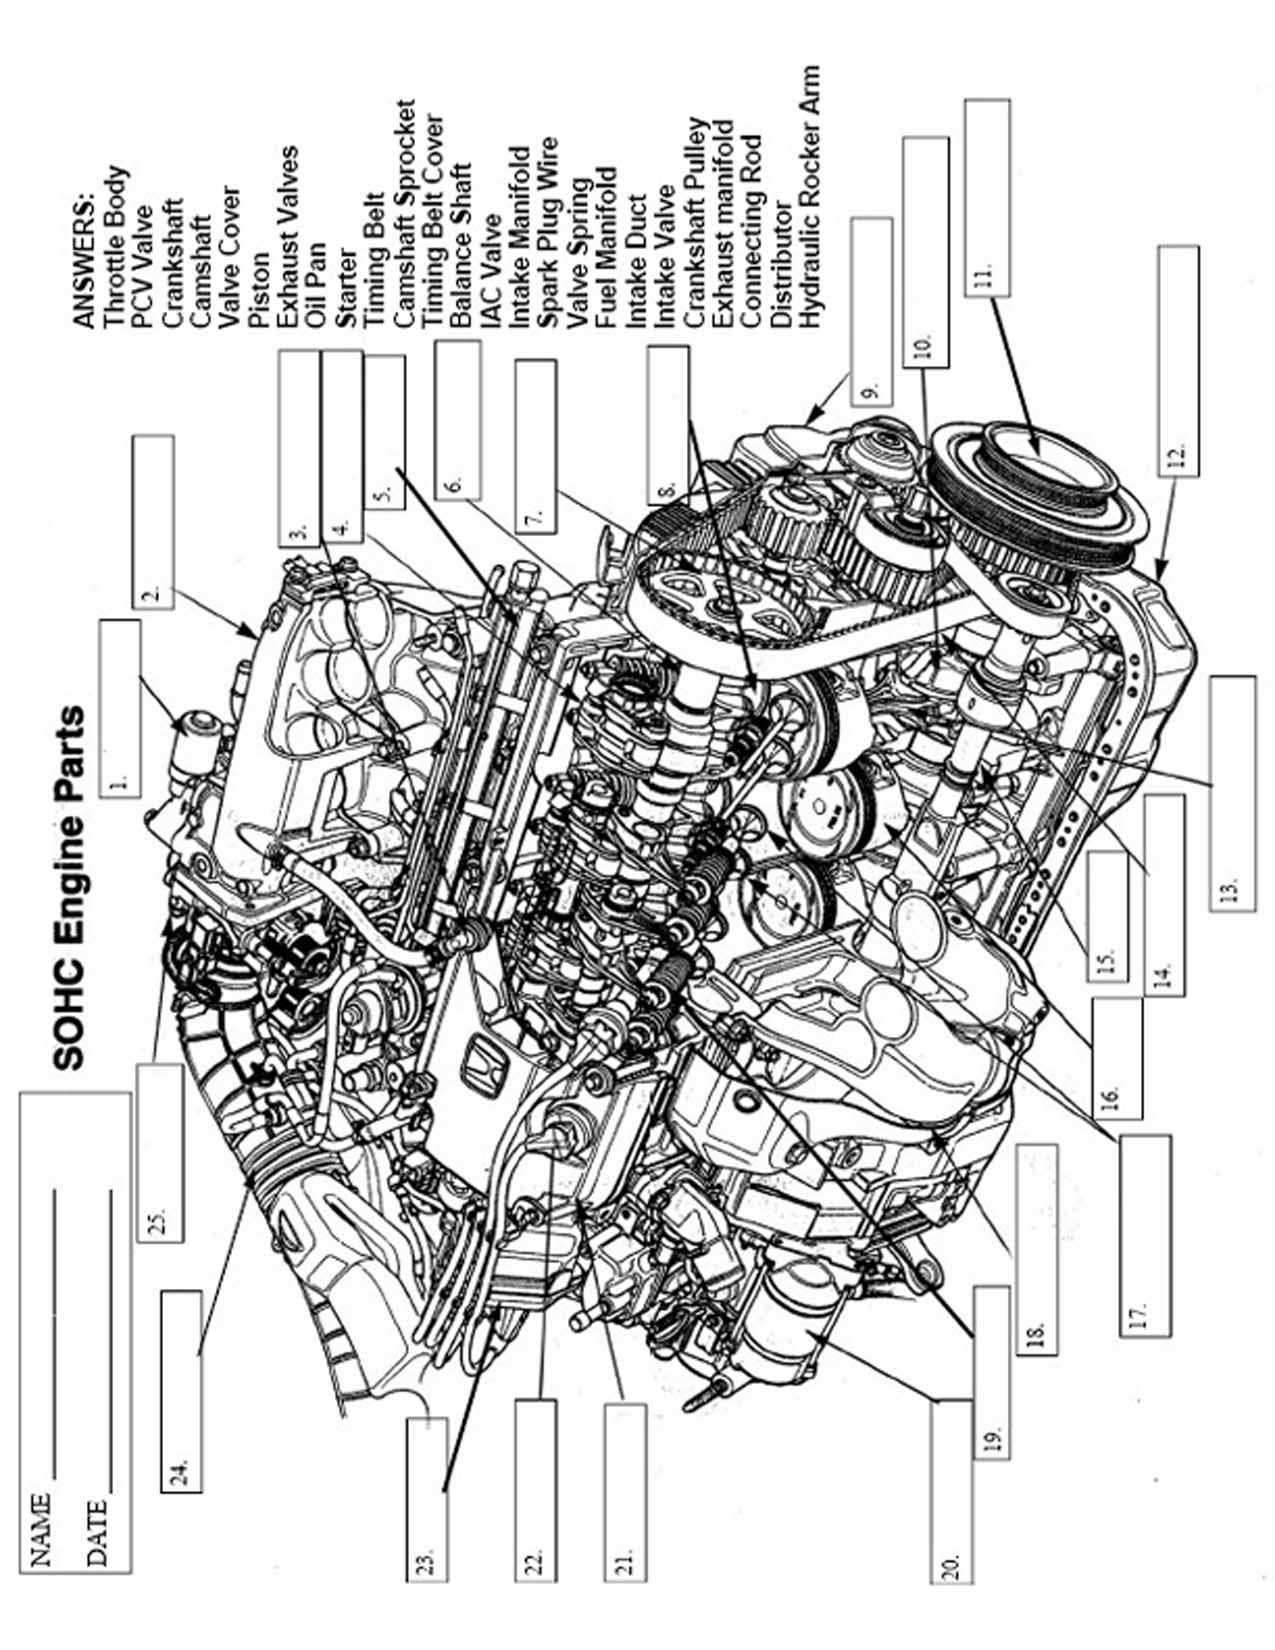 car engine components diagram pdf